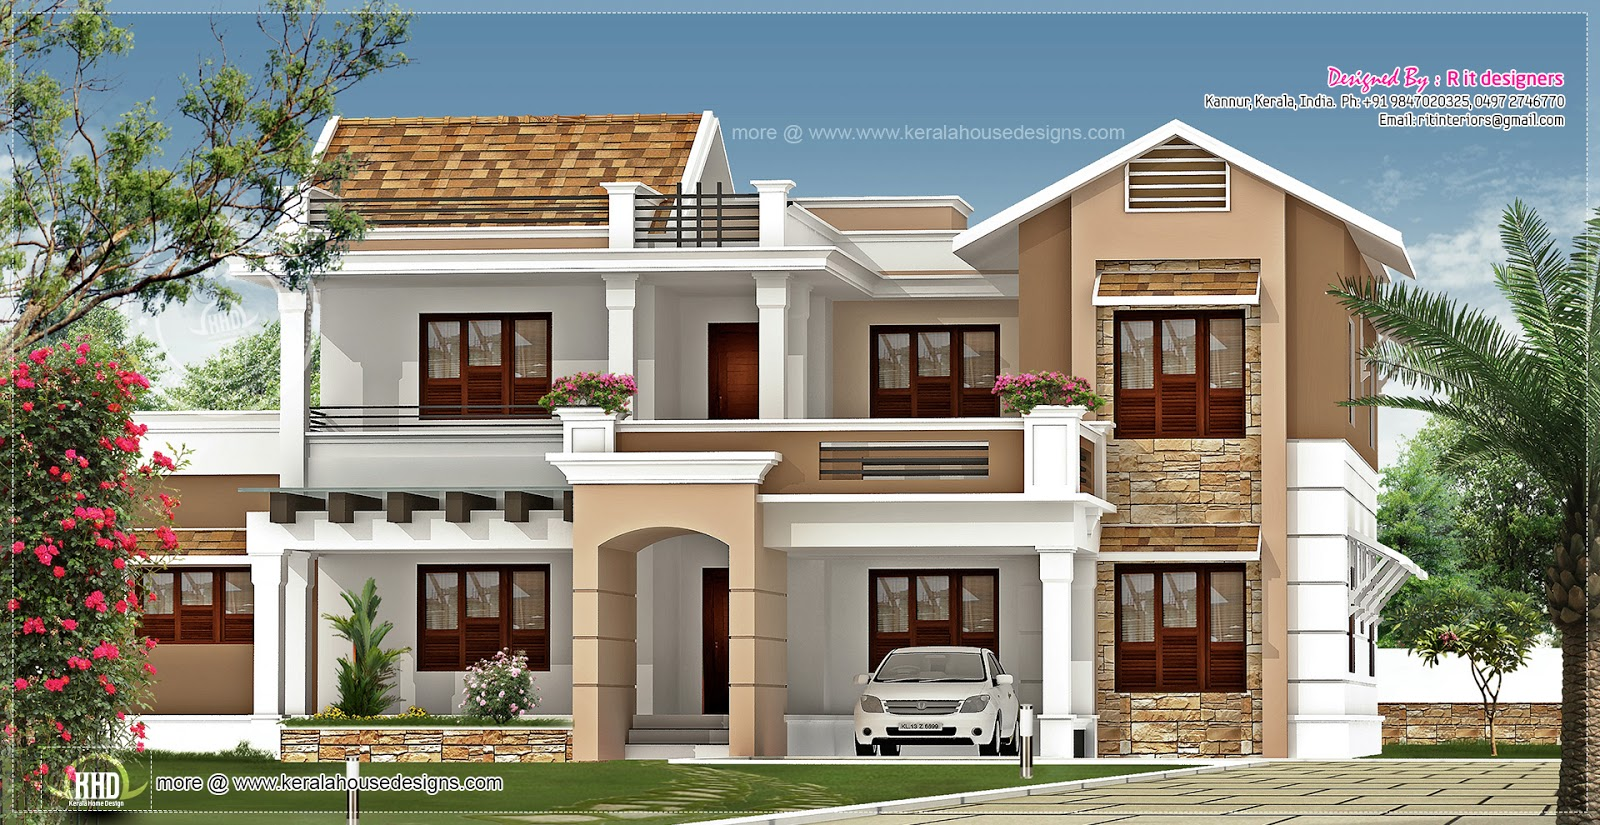 A mixed style 5 bedroom villa from kerala for Villas designs photos